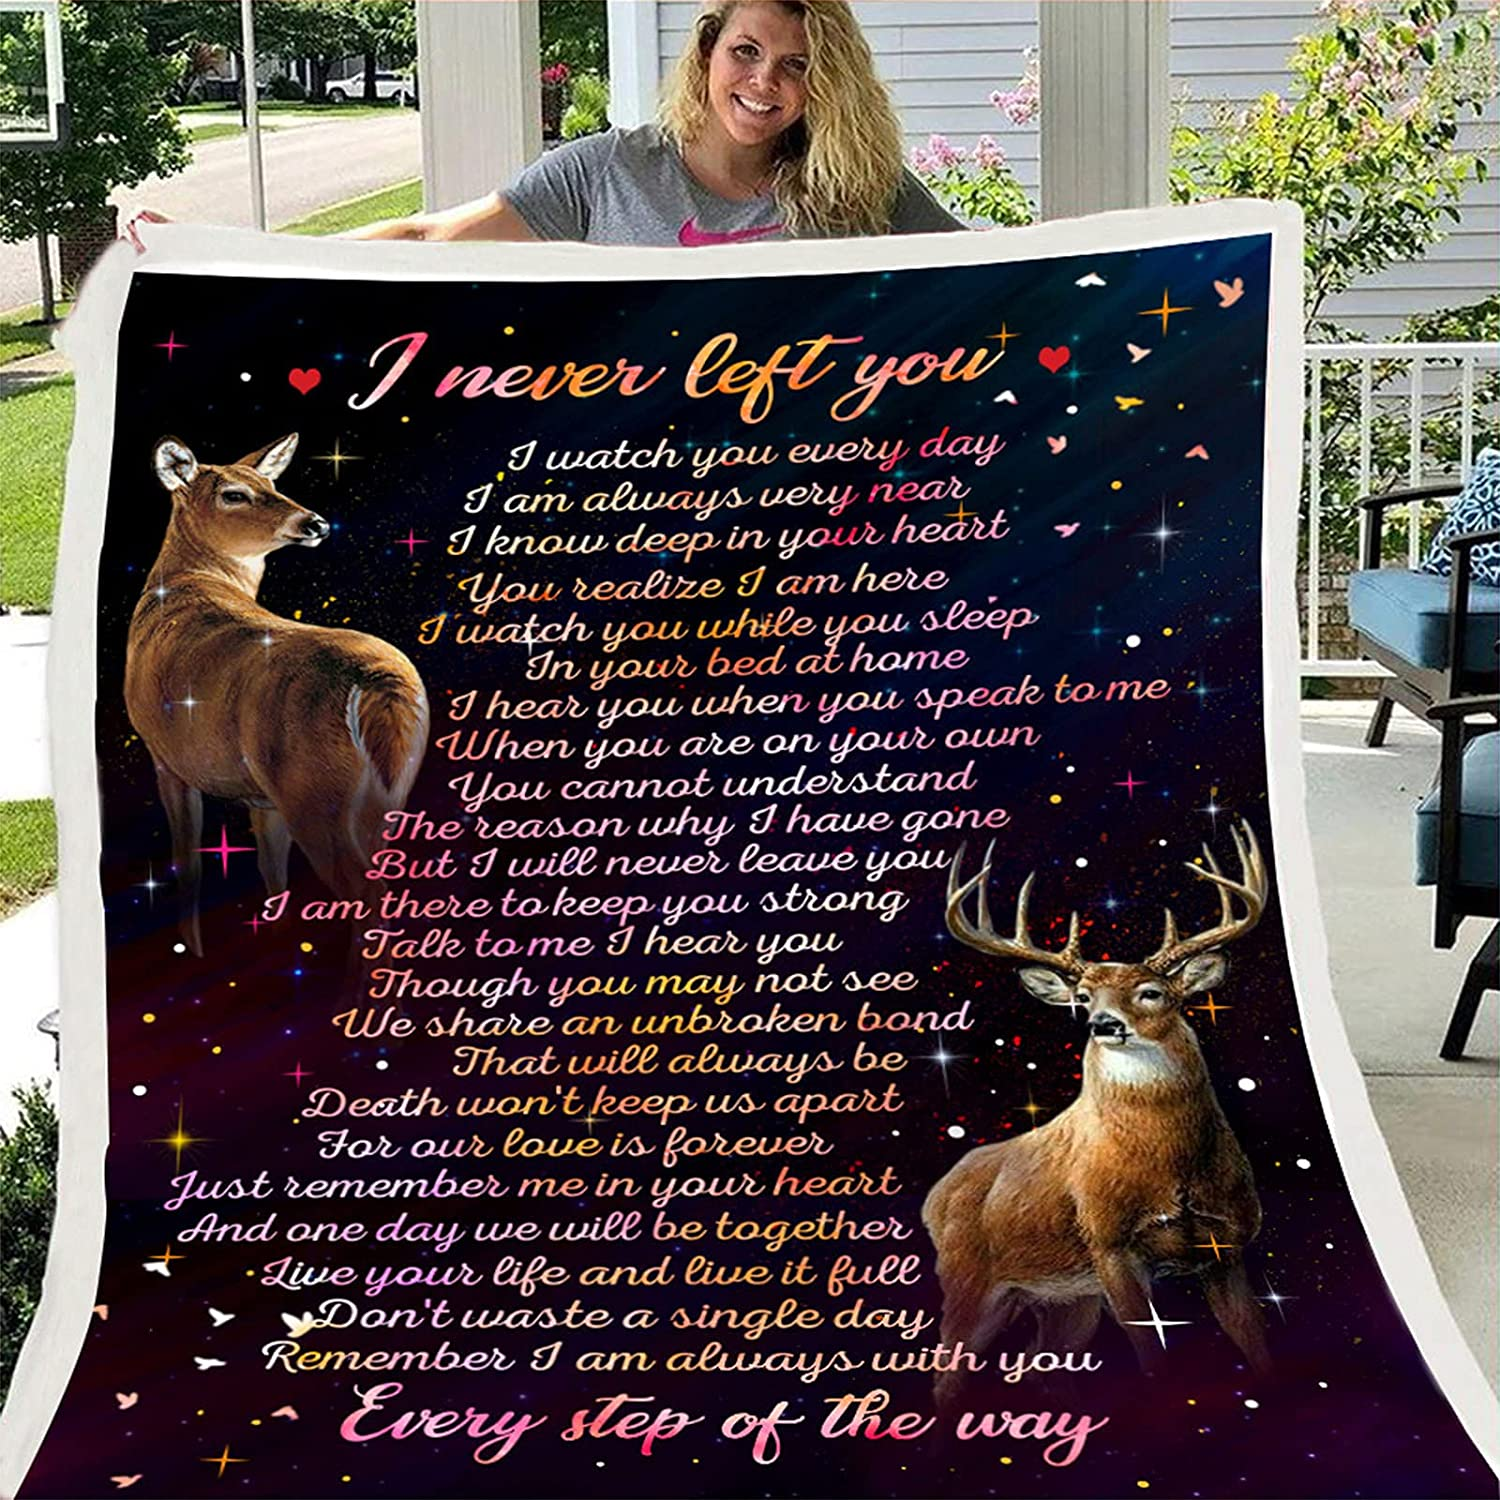 Oaimmk Flannel Throw Blanket to Letter Finally resale start Daughter Print My Challenge the lowest price Message